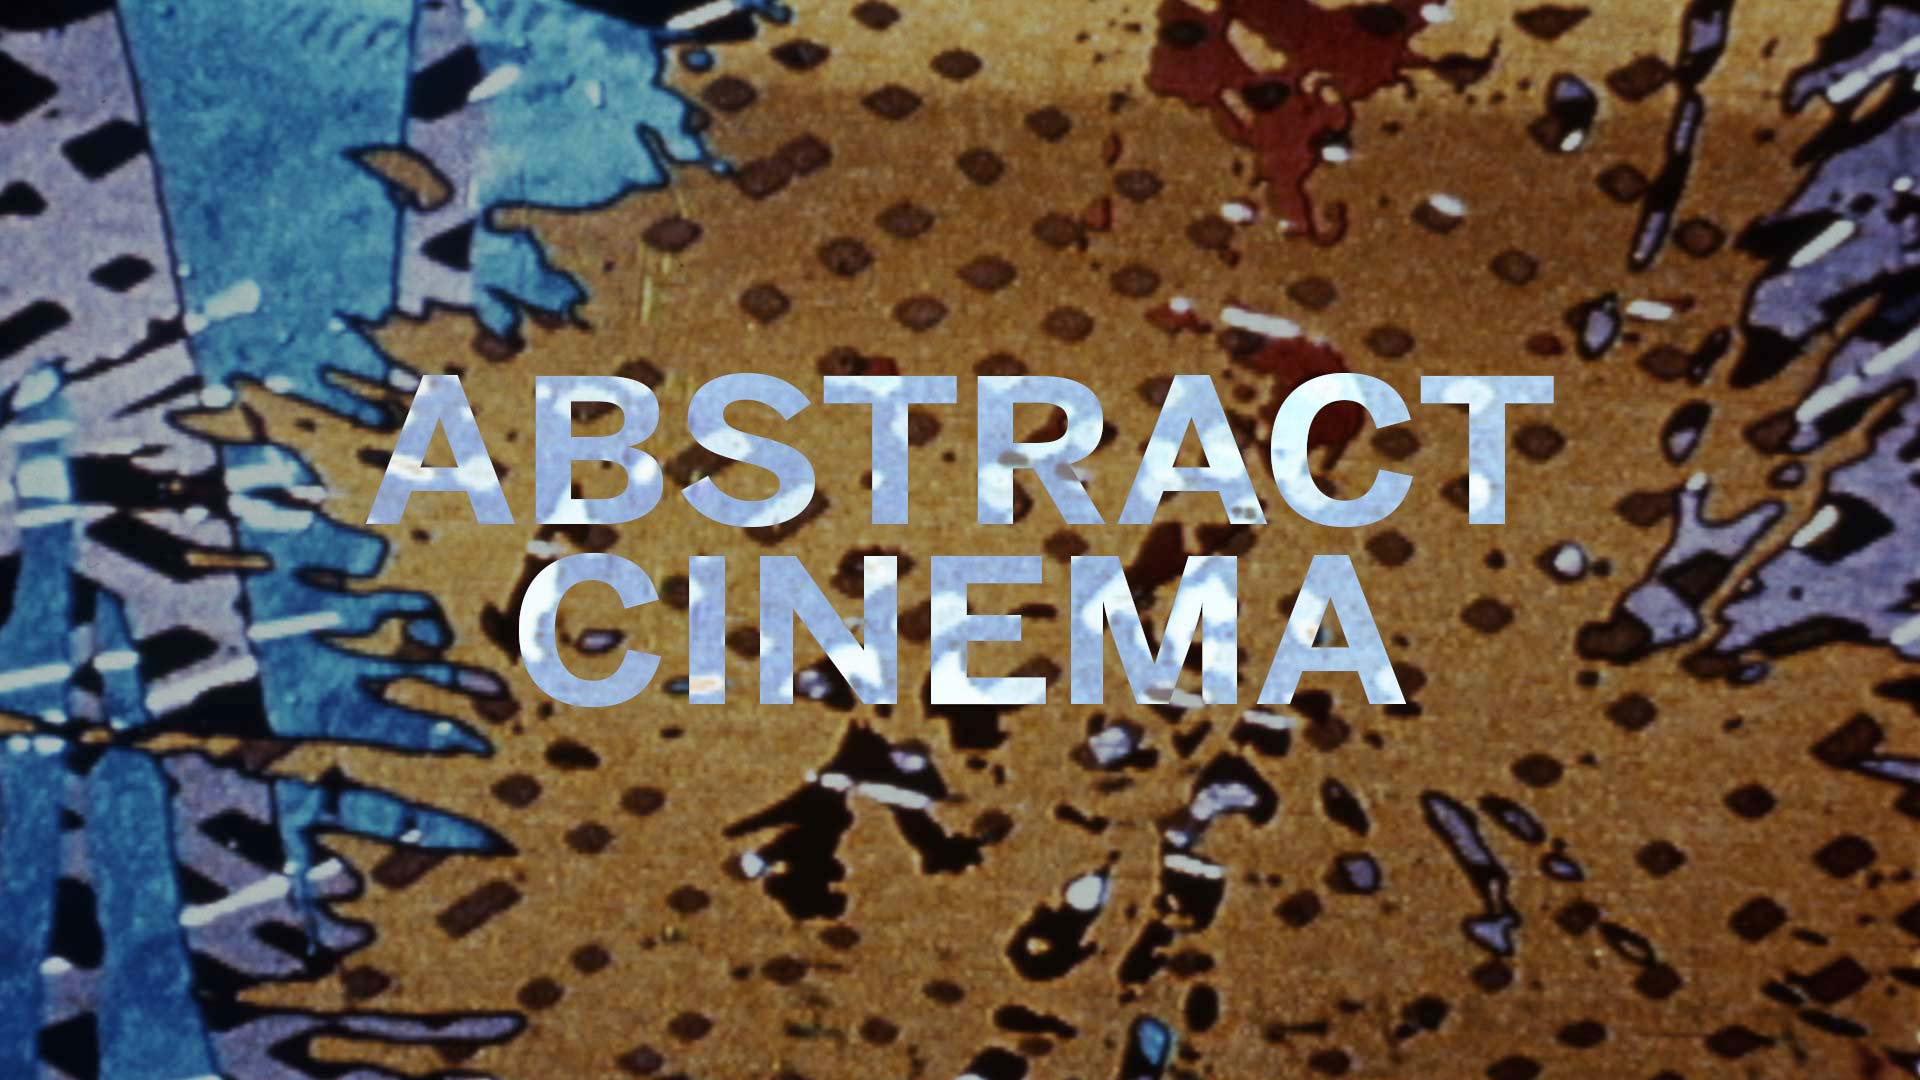 Abstract Cinema - image